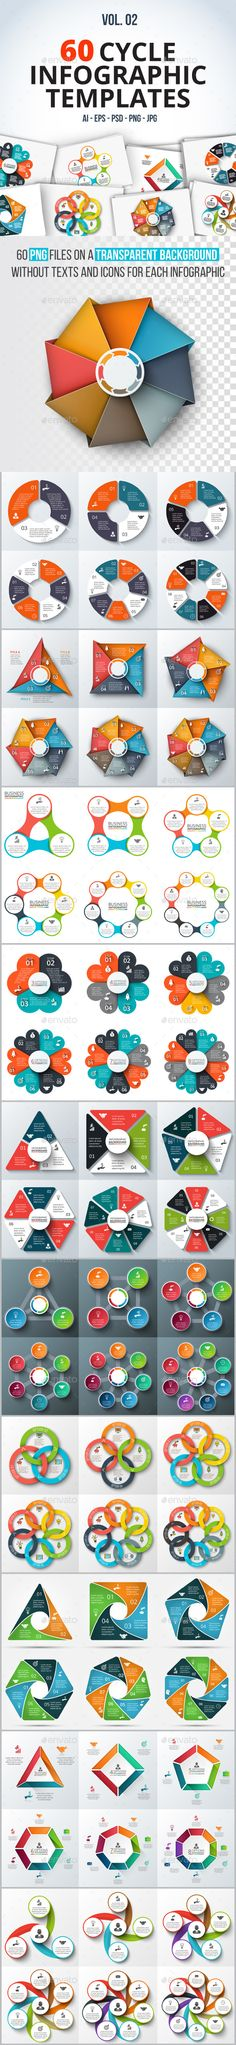 60 Cycle Infographics Templates PSD, Vector EPS, AI Illustrator